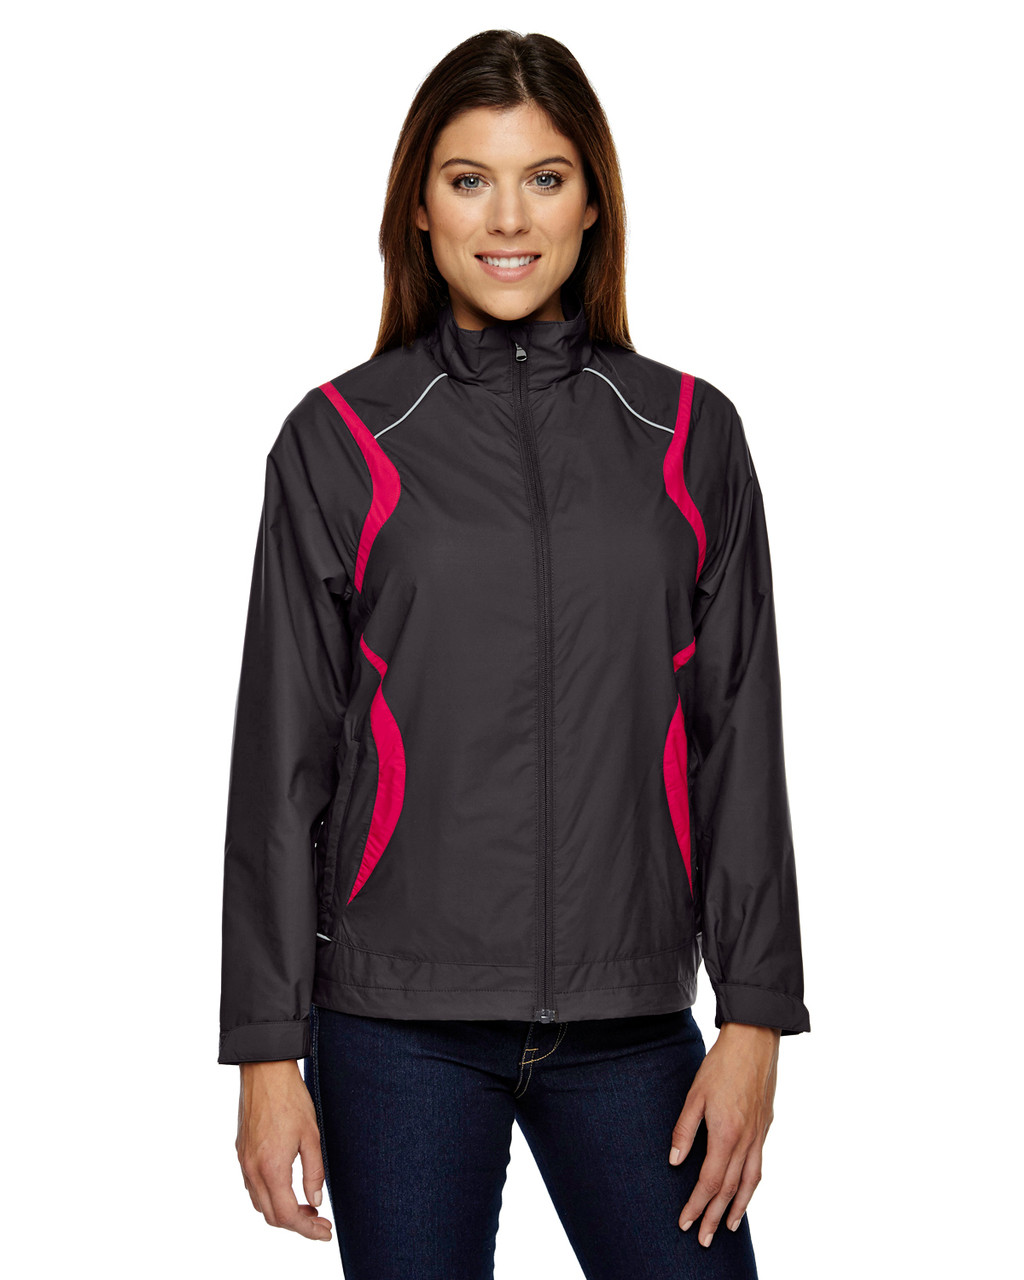 Blk silk 78167 78167 North End Venture Lightweight Mini Ottoman Jacket | Blankclothing.ca